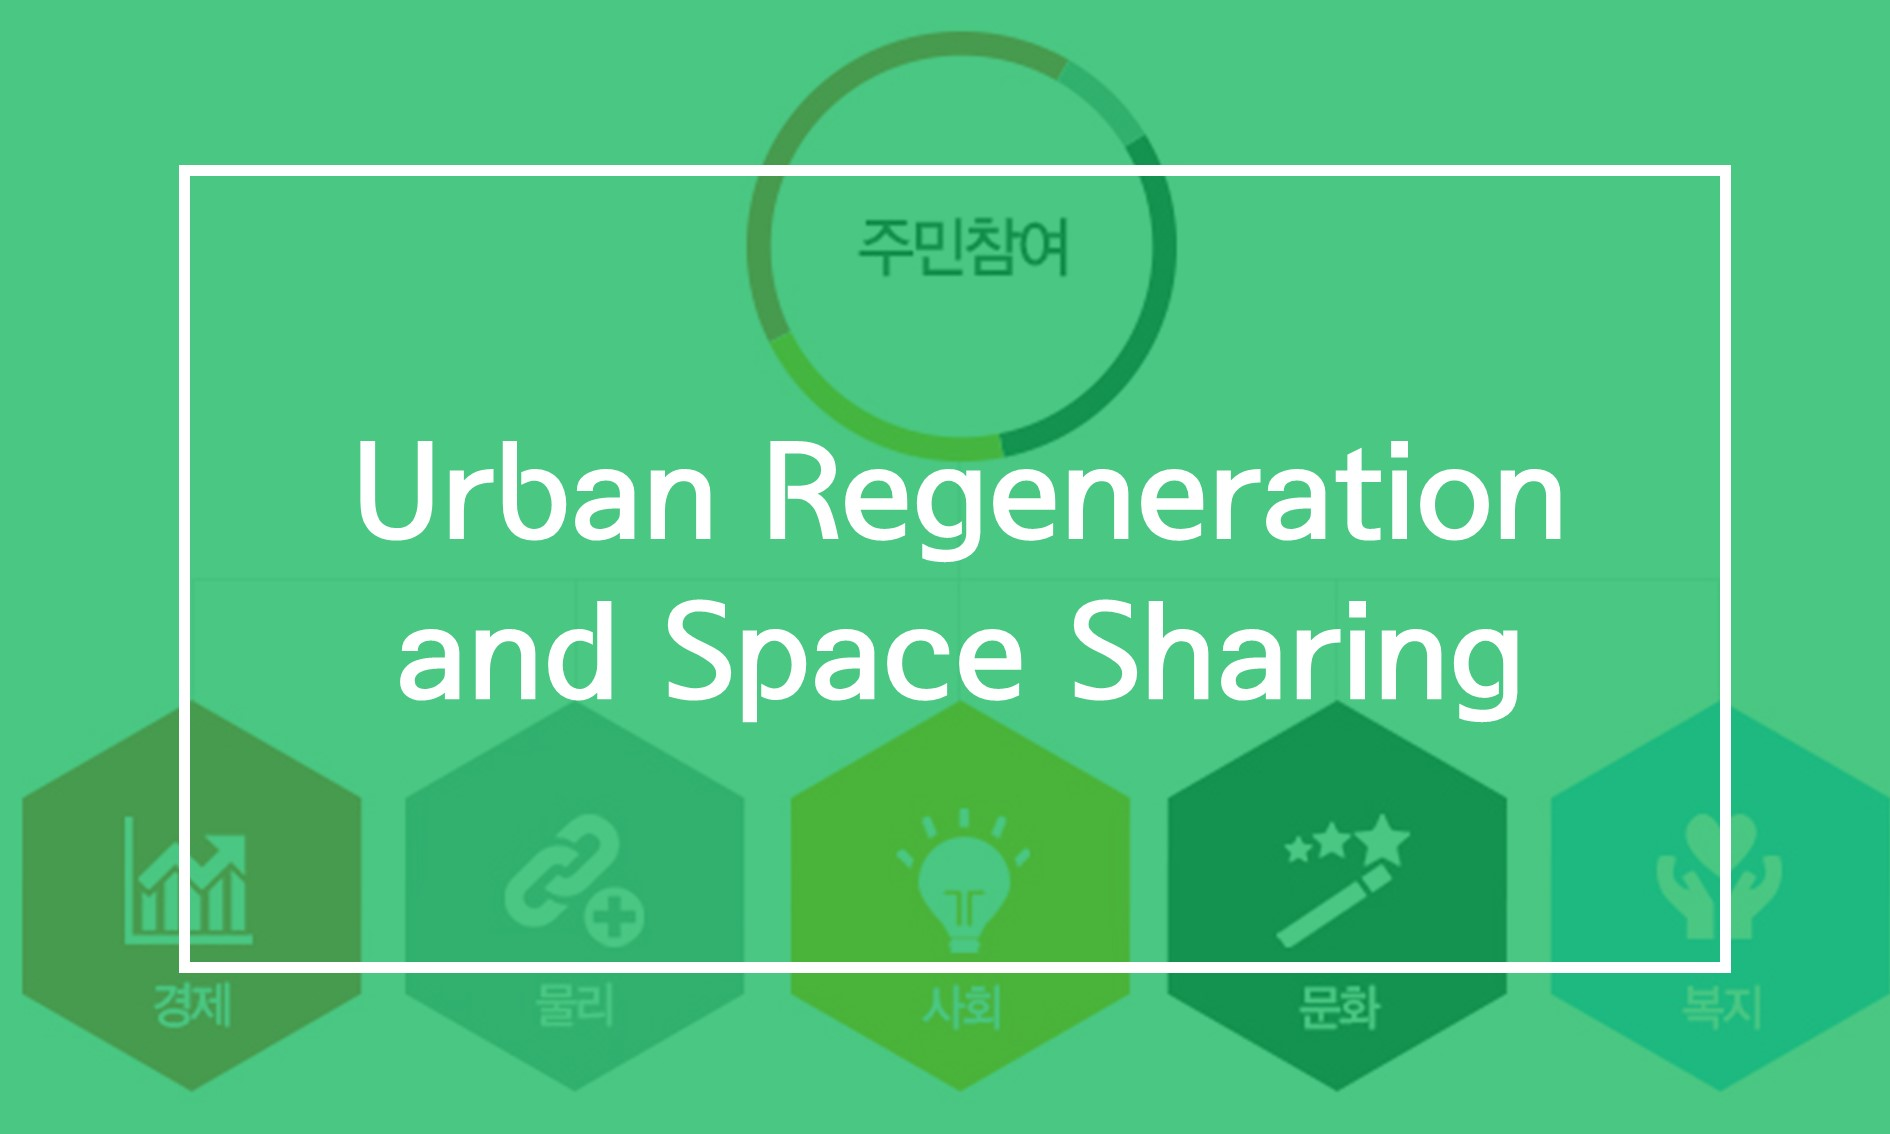 [Resources] Urban Regeneration and Space Sharing